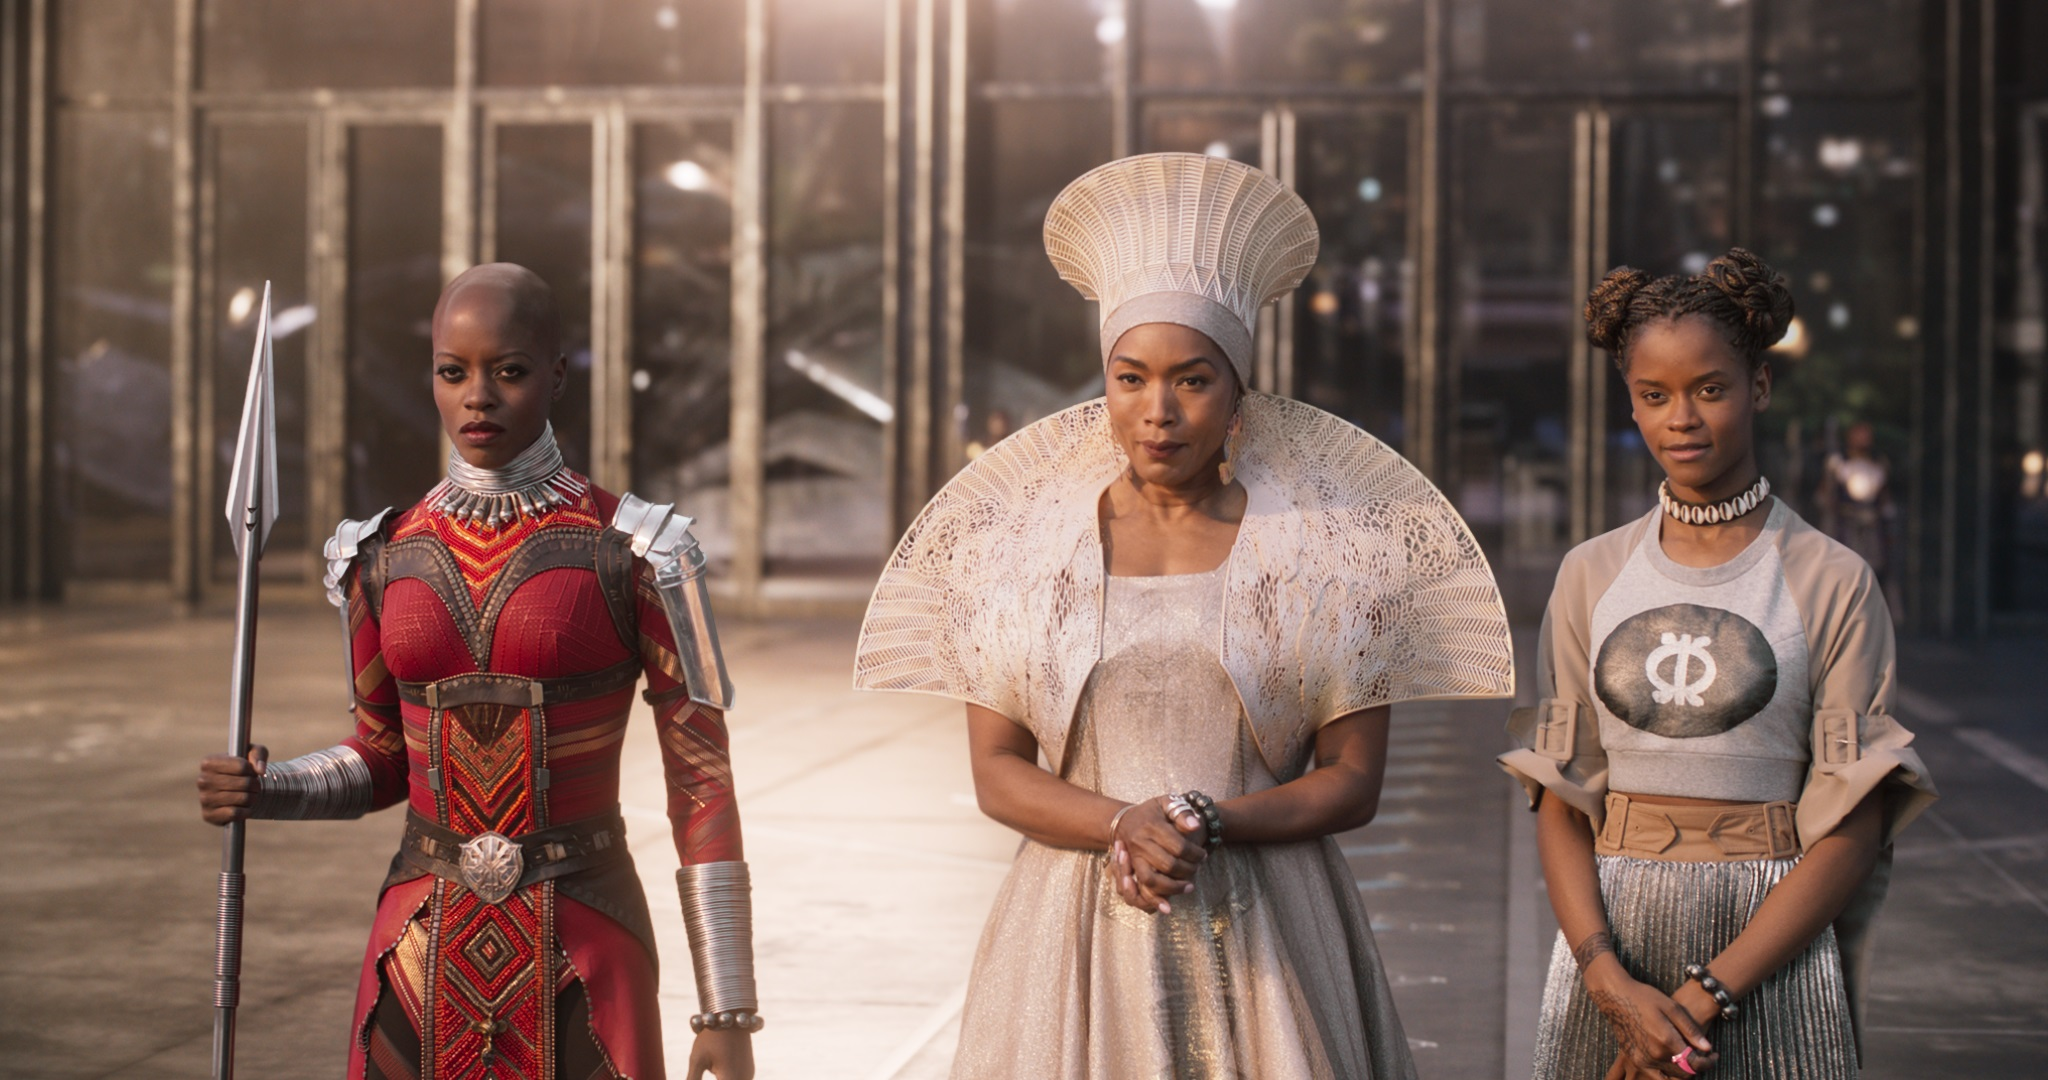 3D Printing at the Movies: How a Costume was 3D Printed for Black Panther